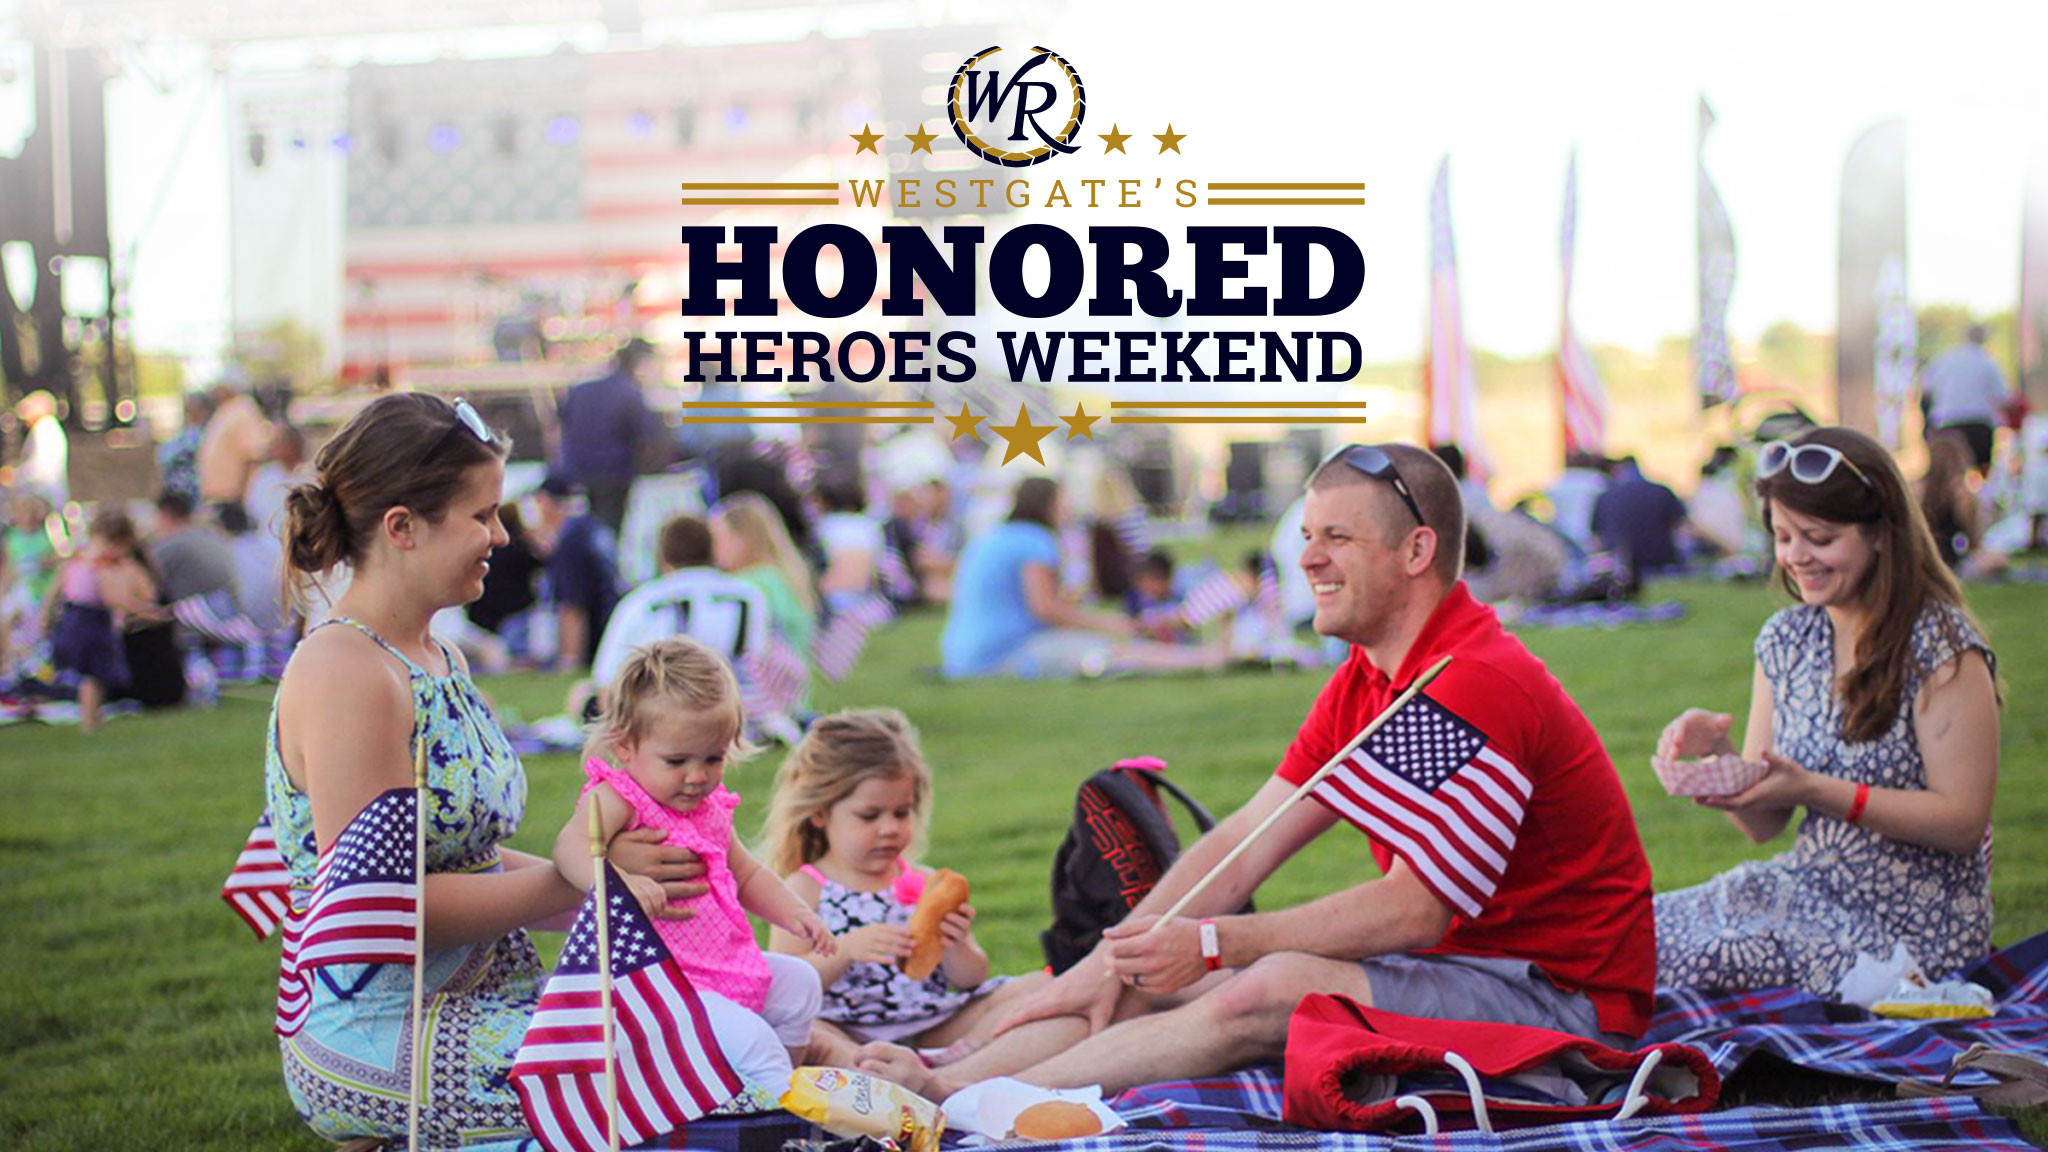 Free Vacations For Military Families | Honored Heros Weekend | Westgate Resorts